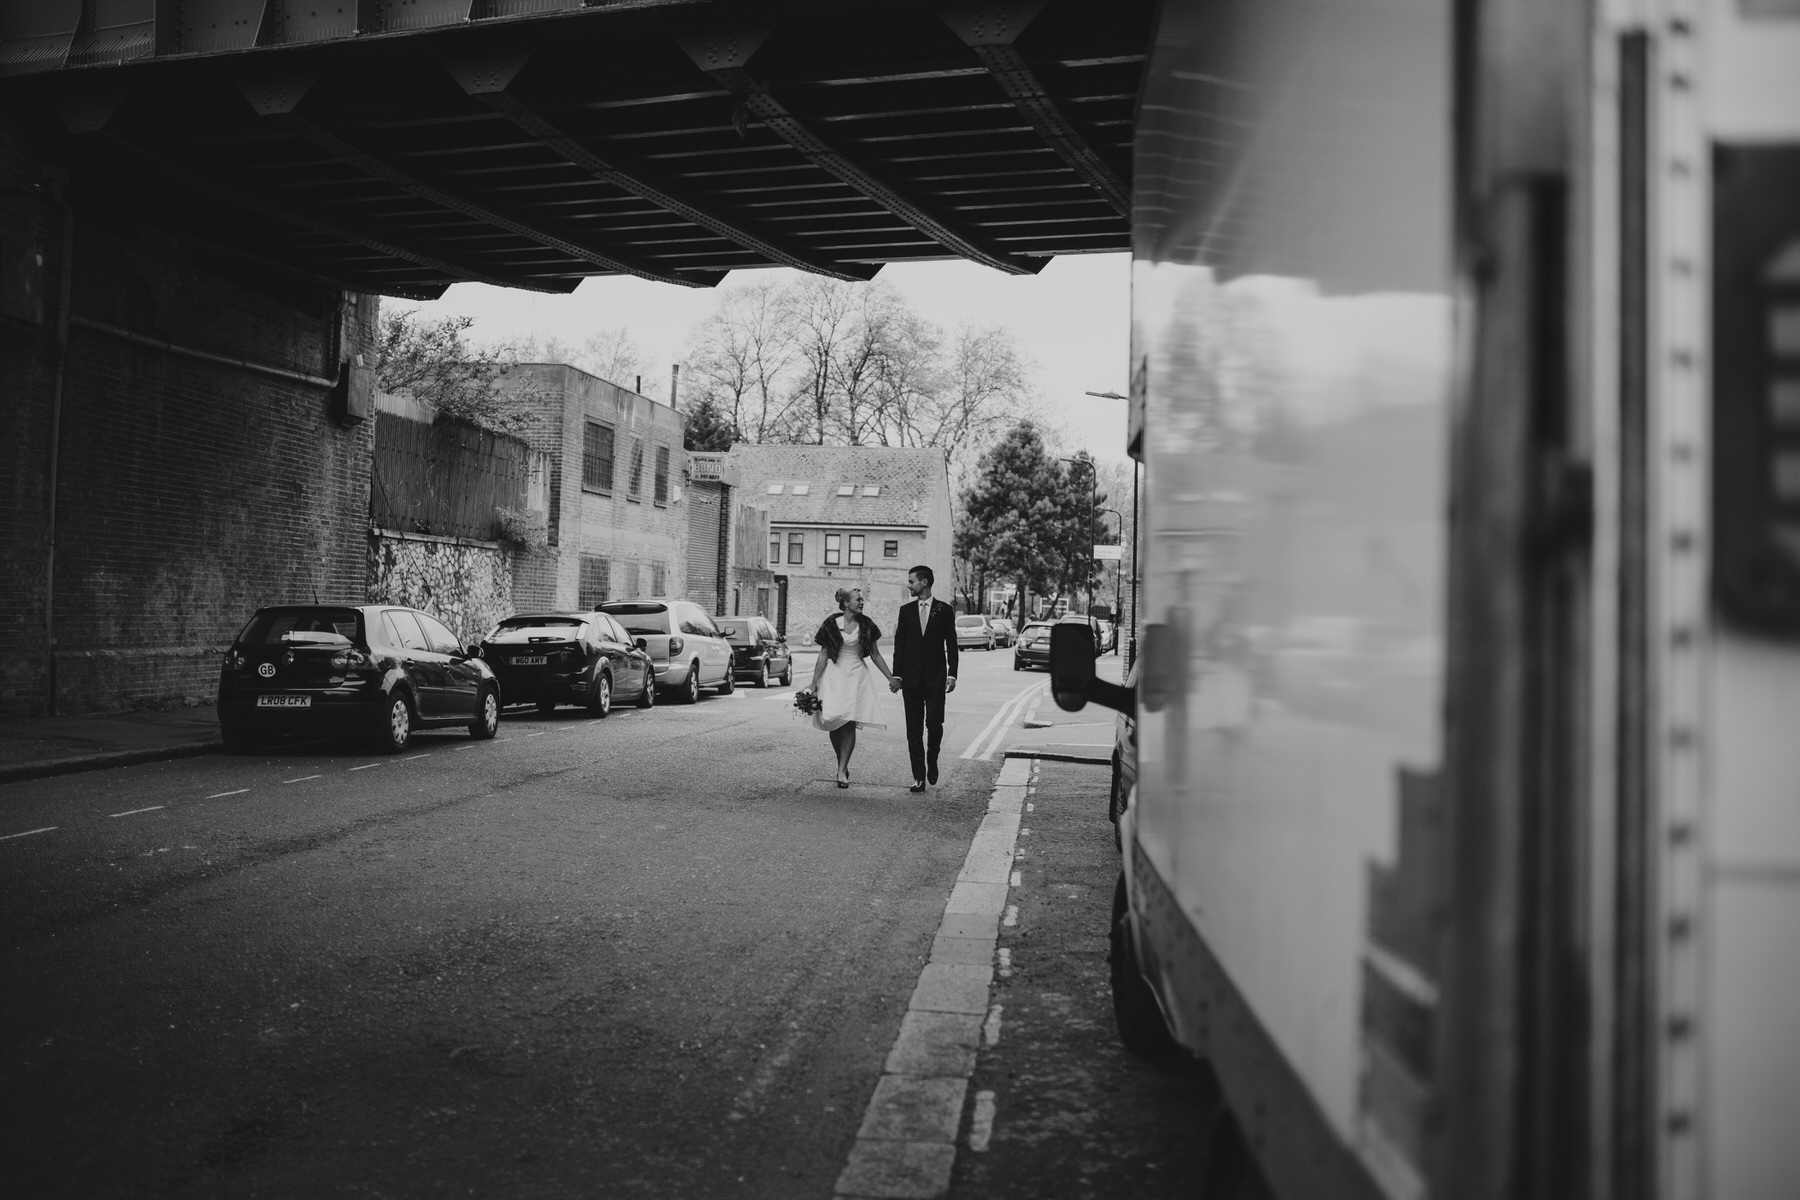 MS-Londesborough-Pub-wedding-Hackney-alternative-photographer-54-BW-bride-walking-groom-under-bridge.jpg